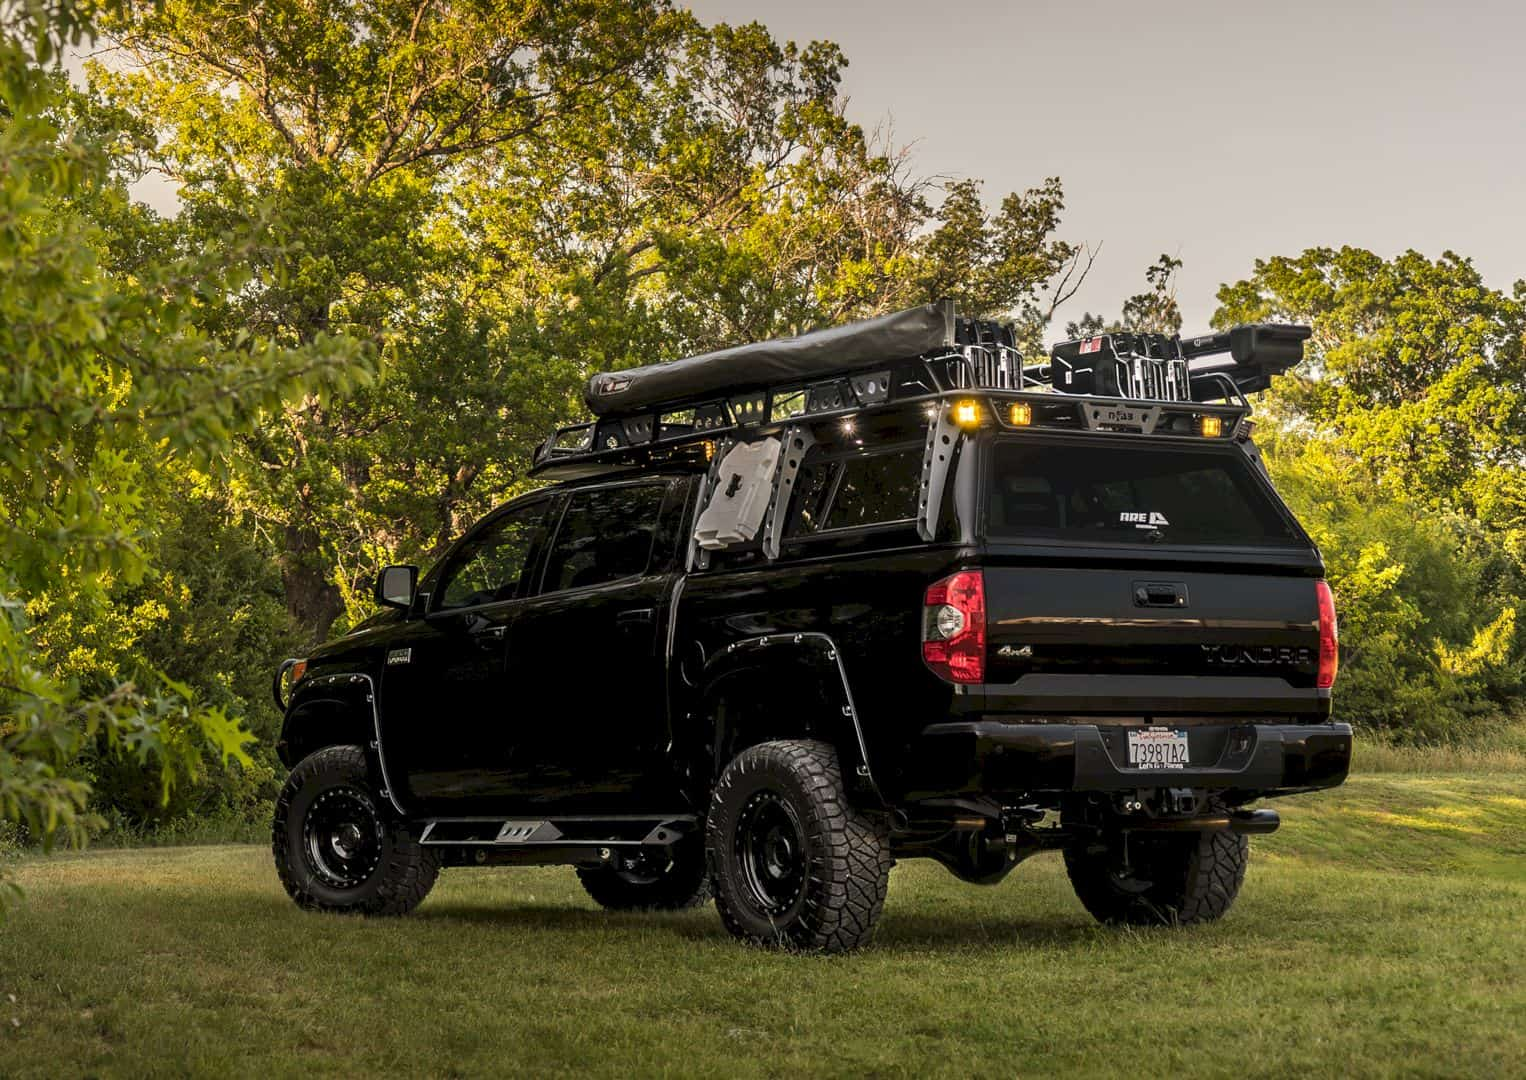 Toyota x Kevin Costner Tundra Platinum: Tailored for Work and Play in the Wild